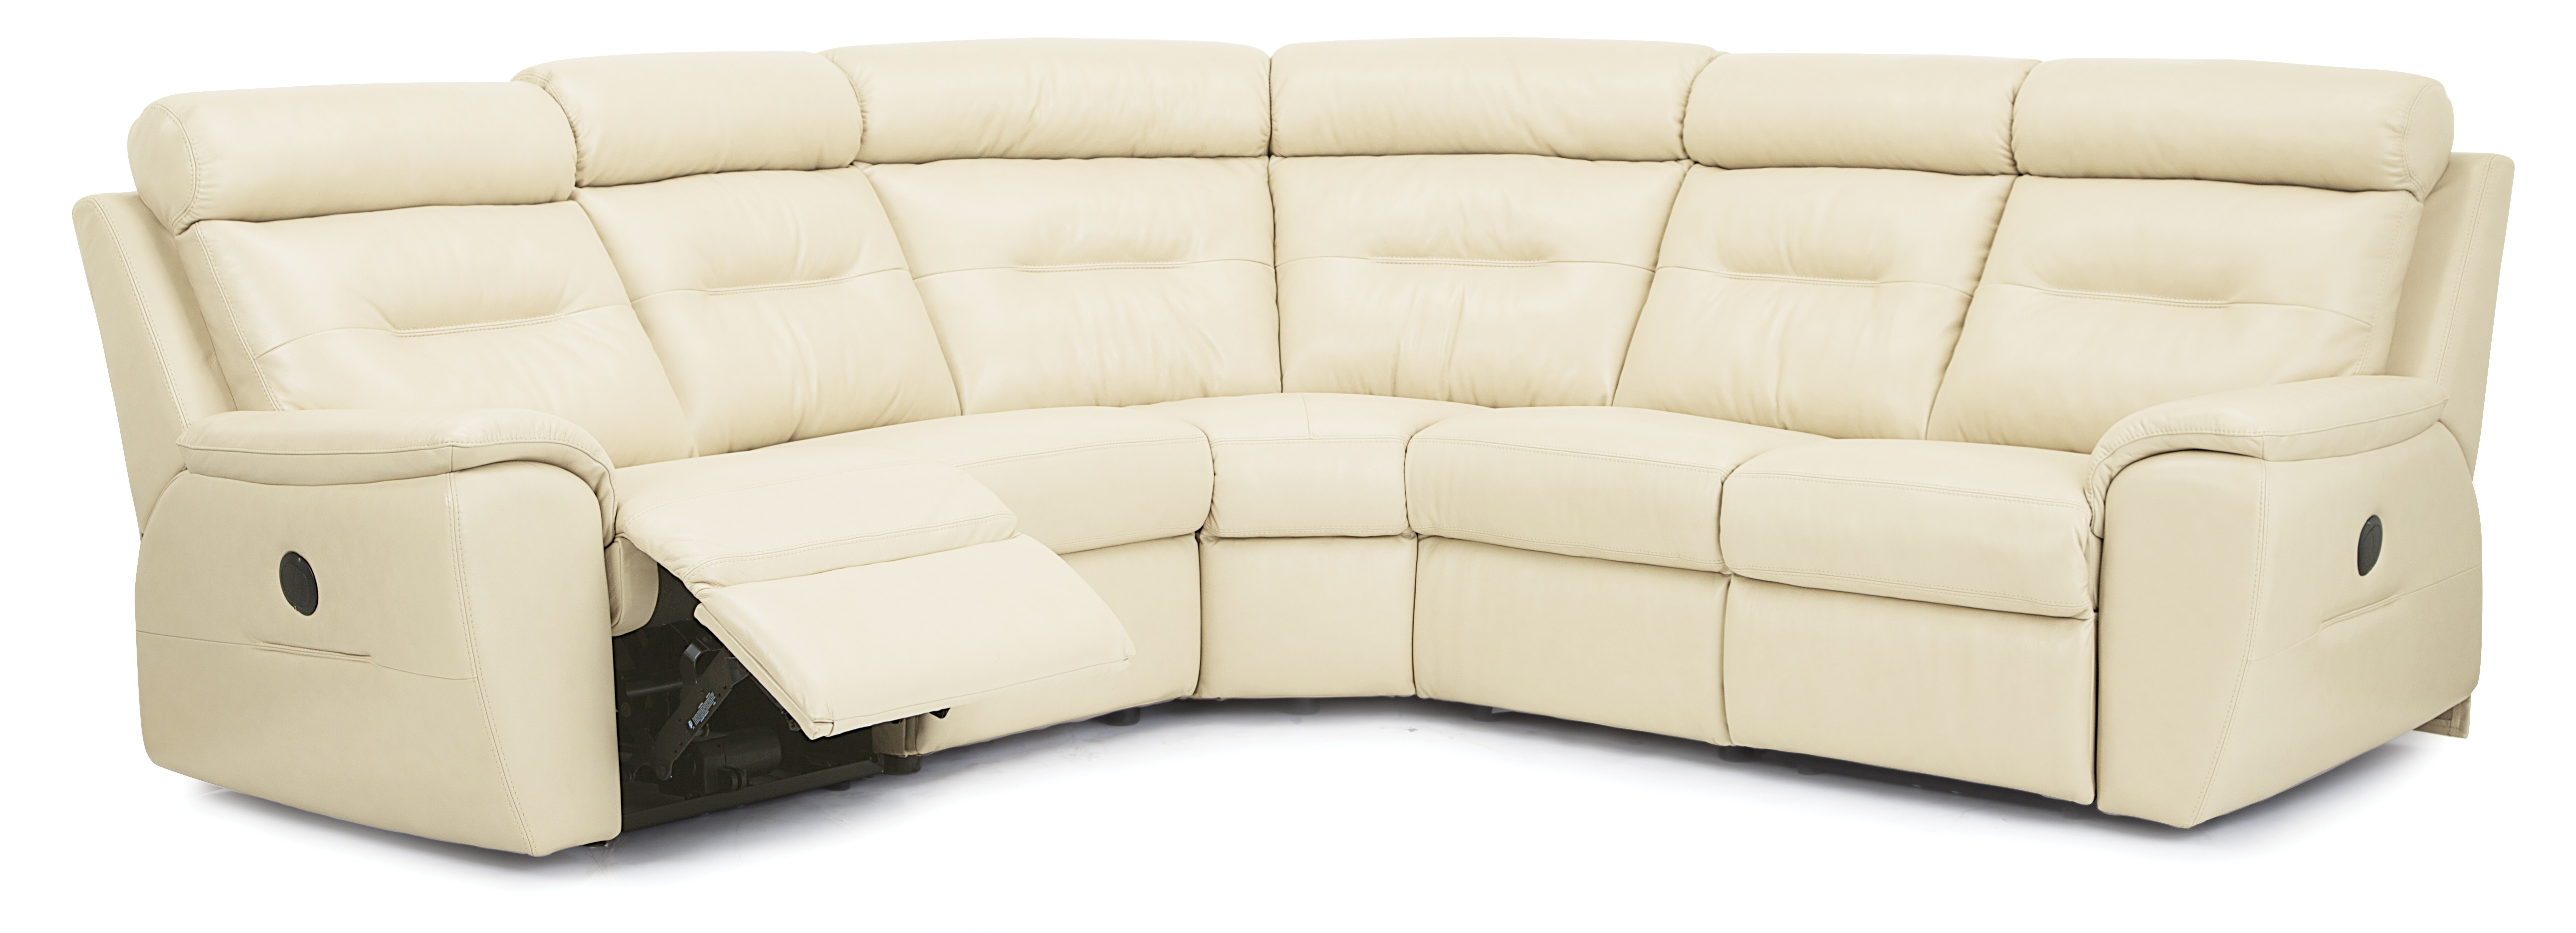 Arlington Reclining Sectional